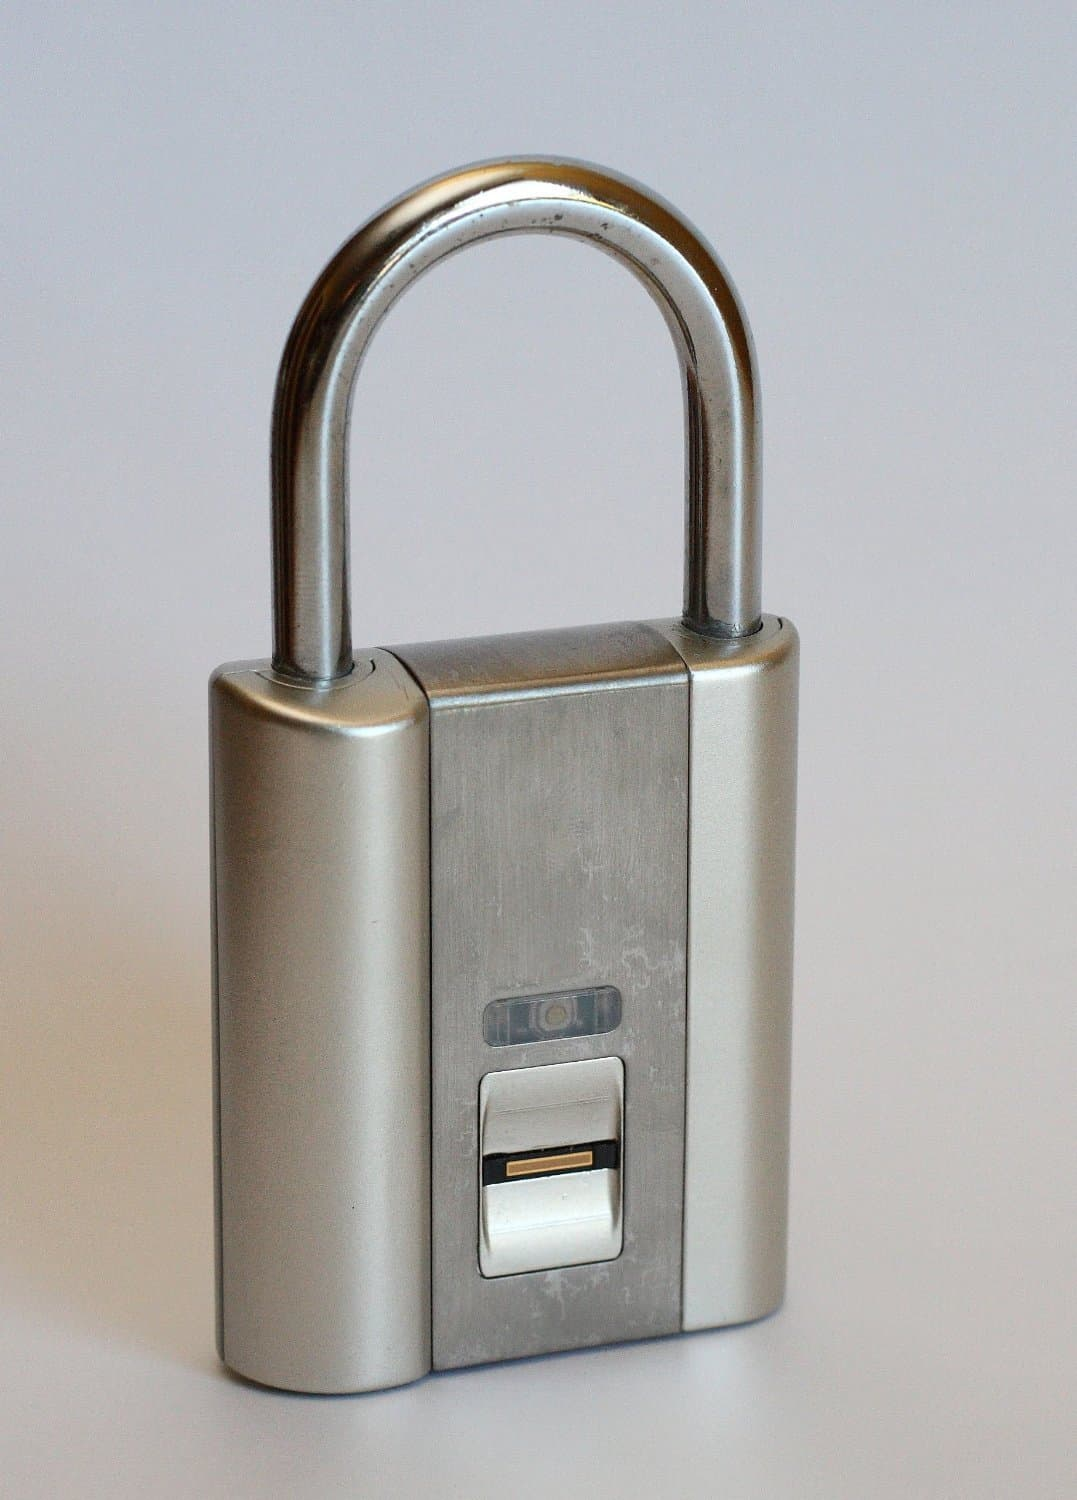 iFingerLock Fingerprint Biometric Padlock Share College Locker with Friends